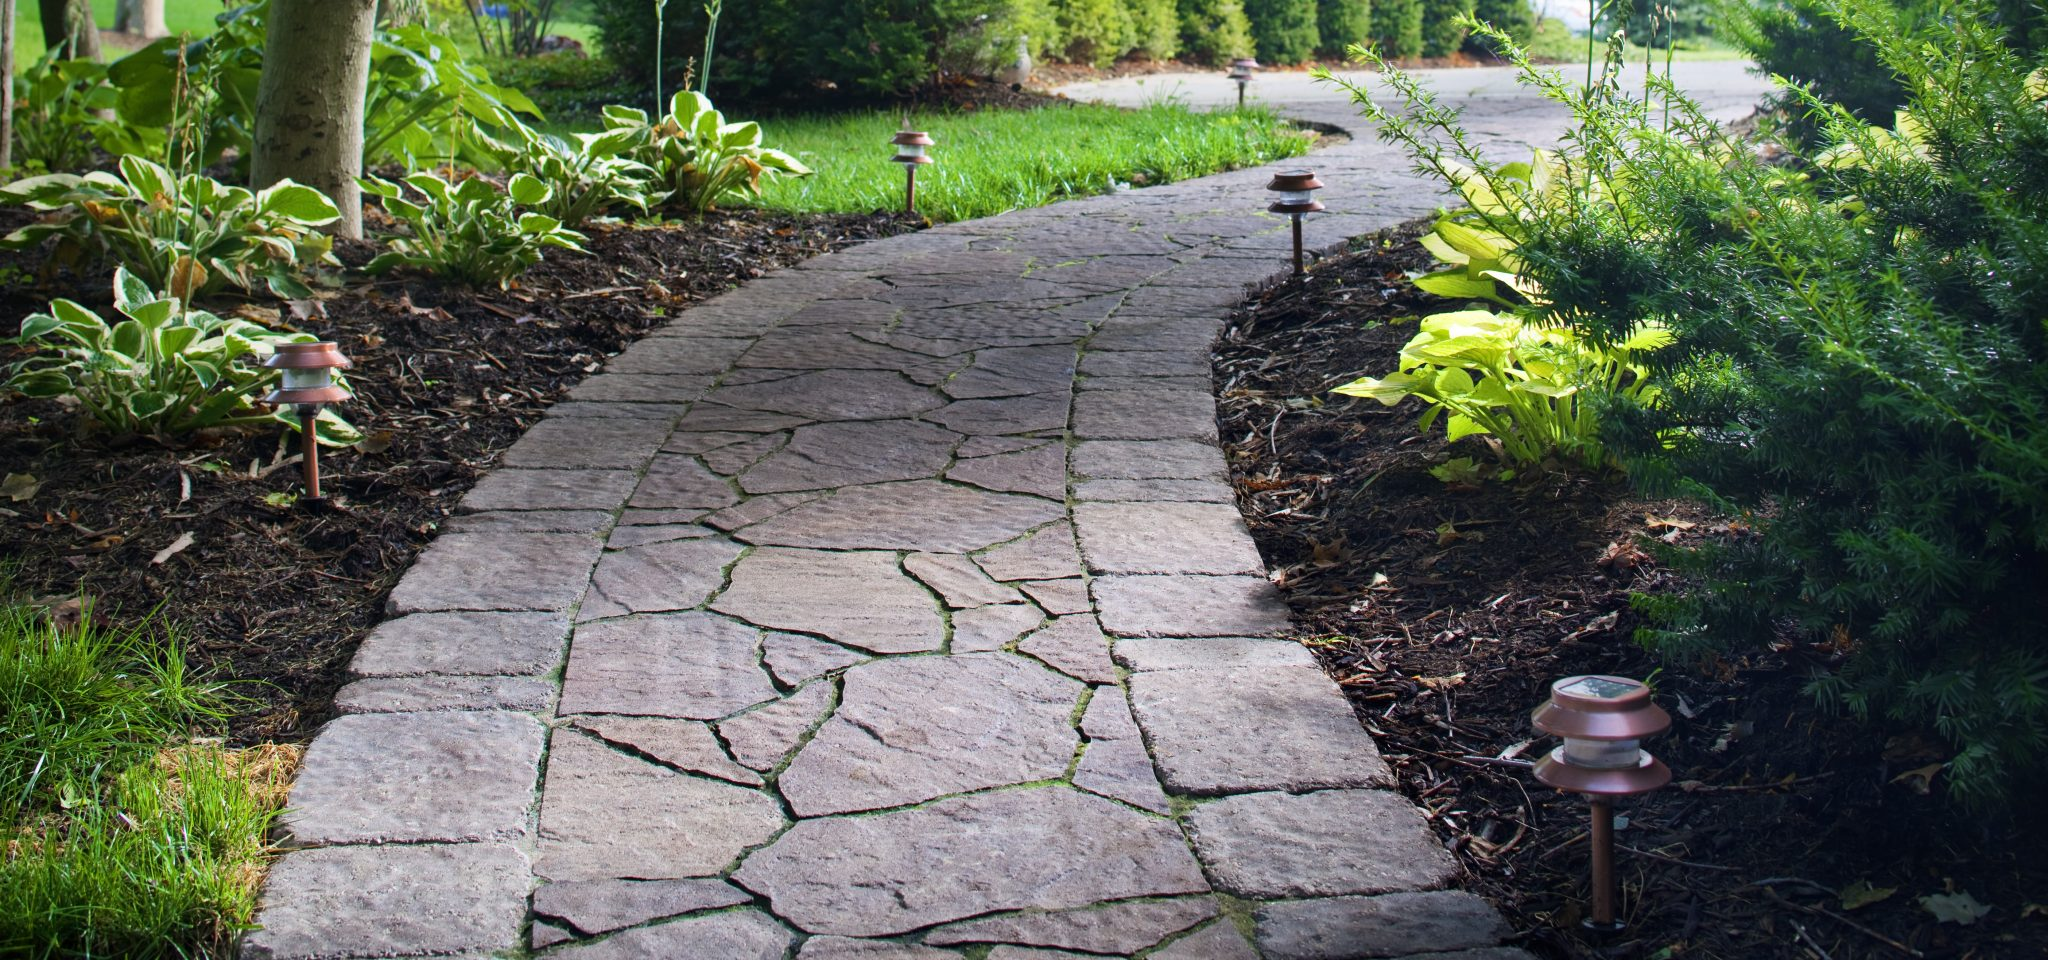 stone walkway pavers install it direct patios front walkways design ideas - Paver Walkway Design Ideas